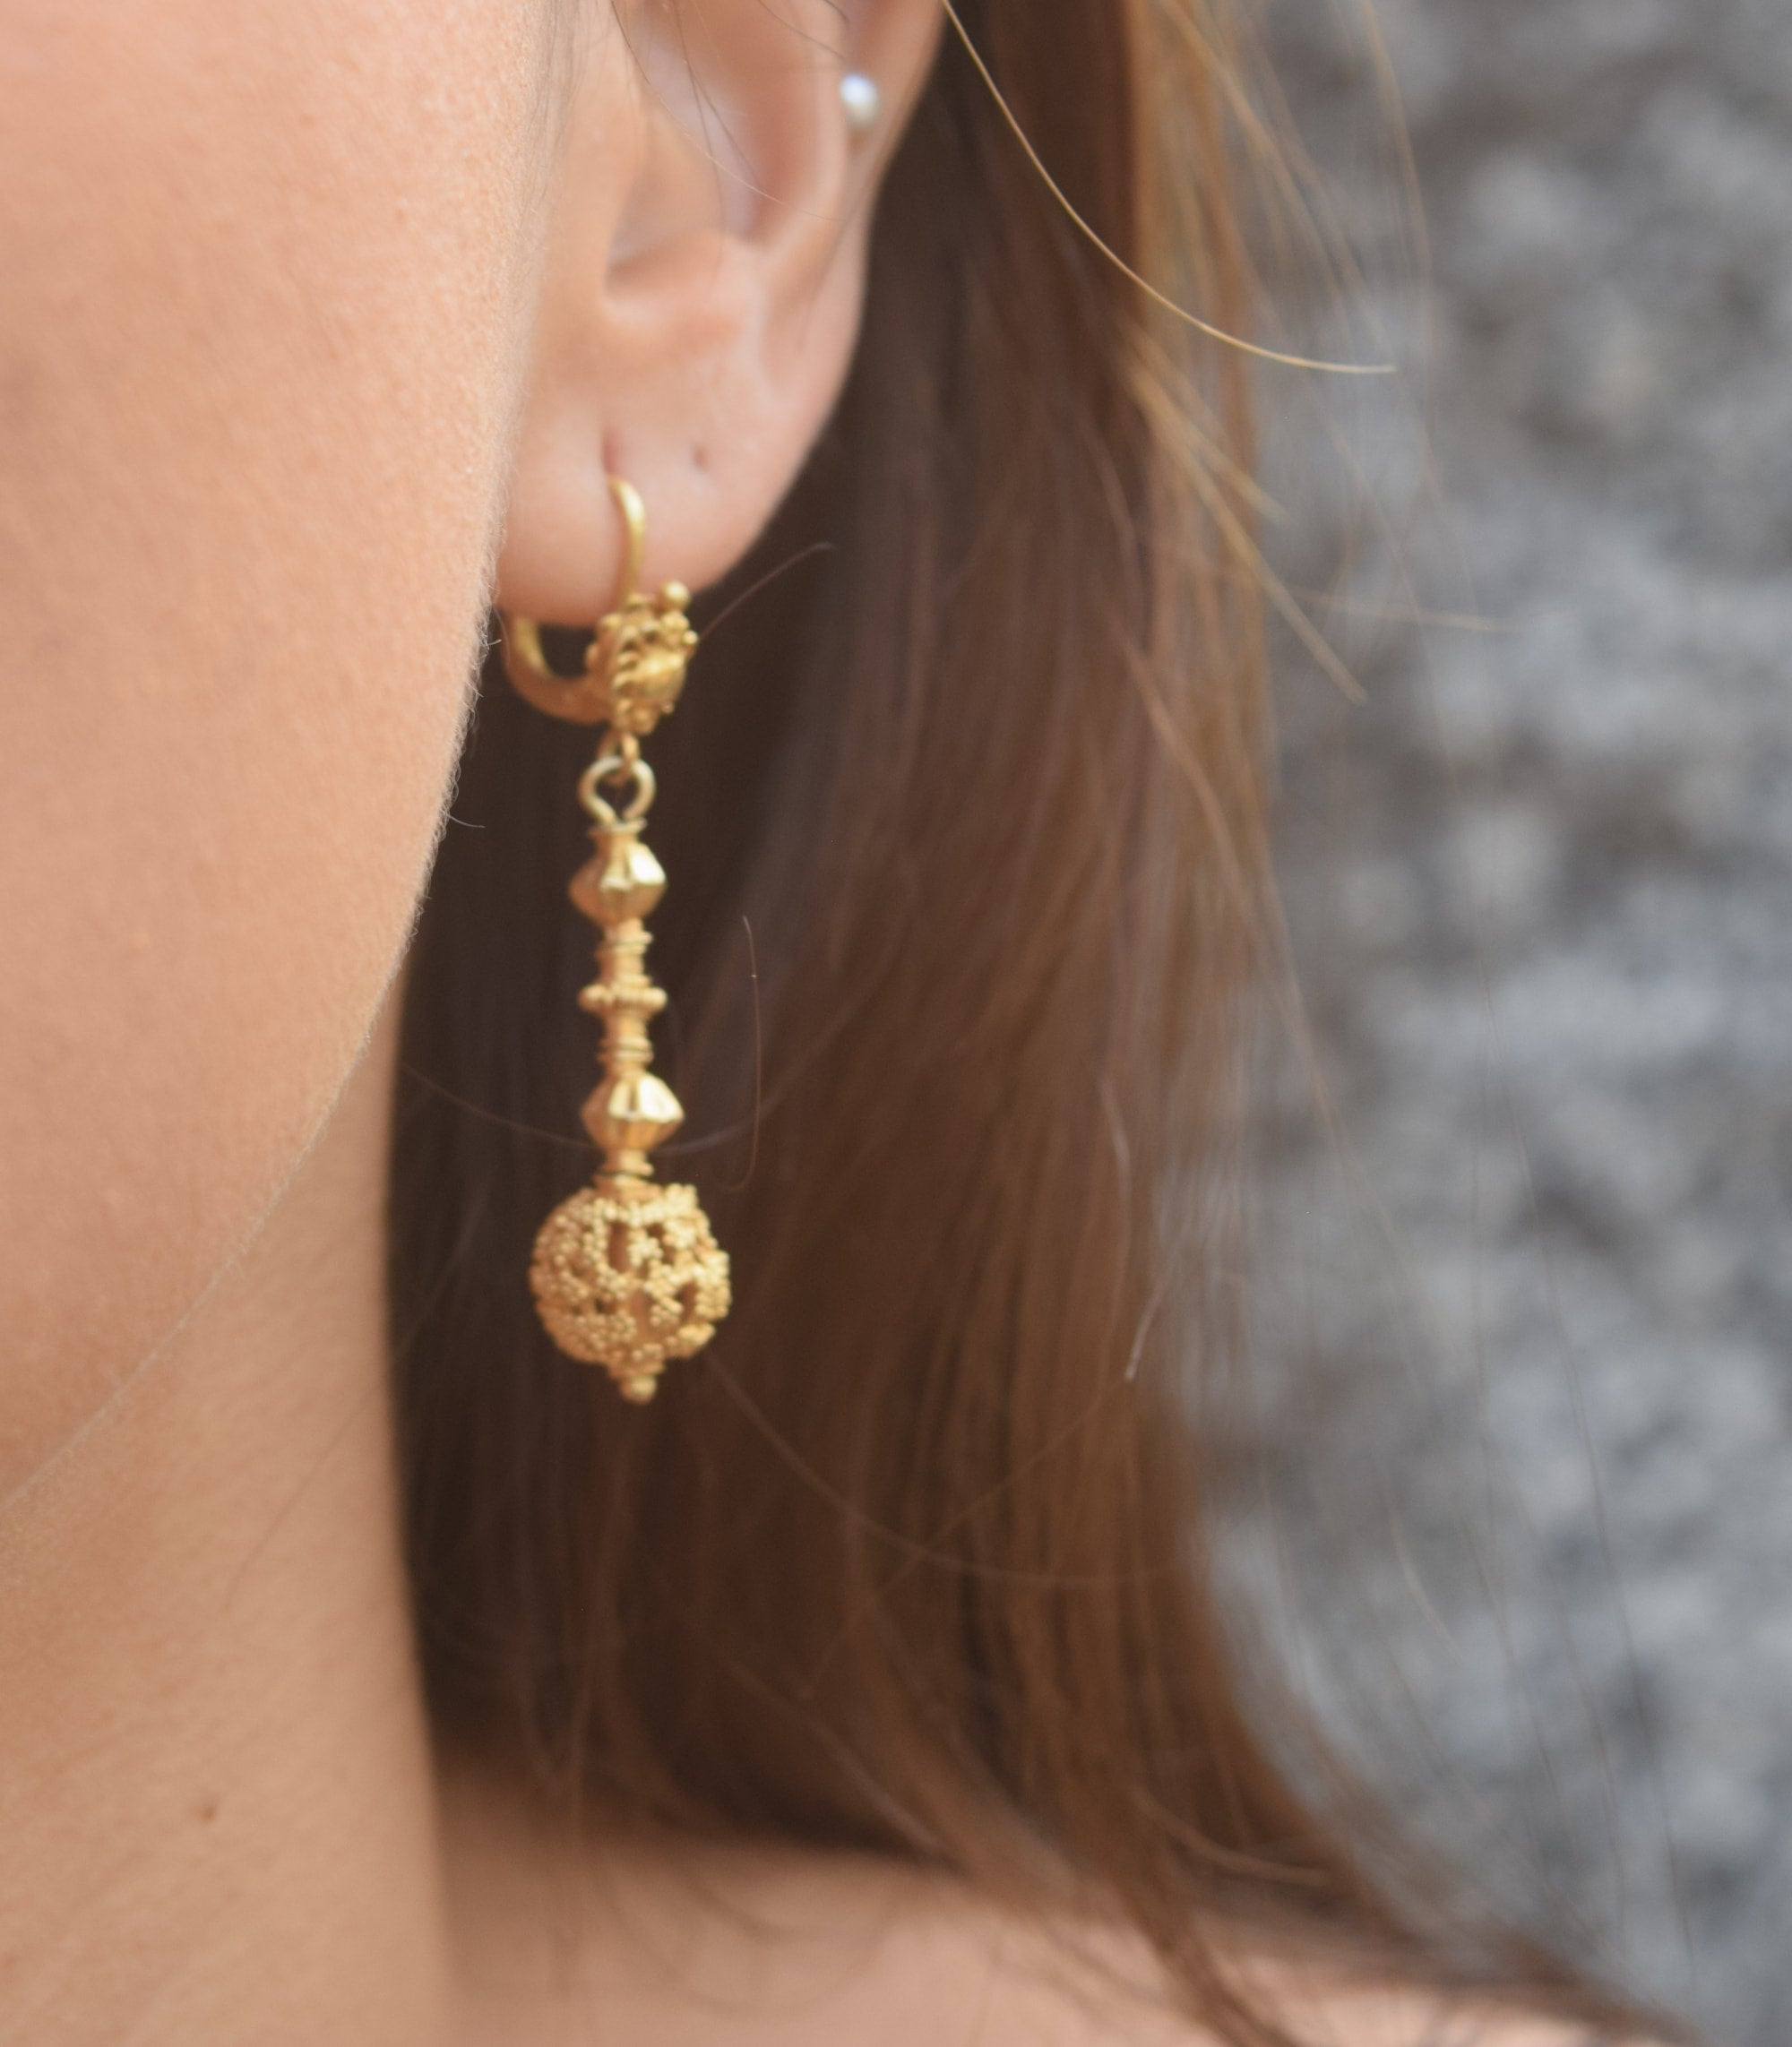 Amami Tambourine Dangle Earrings on a model close-up